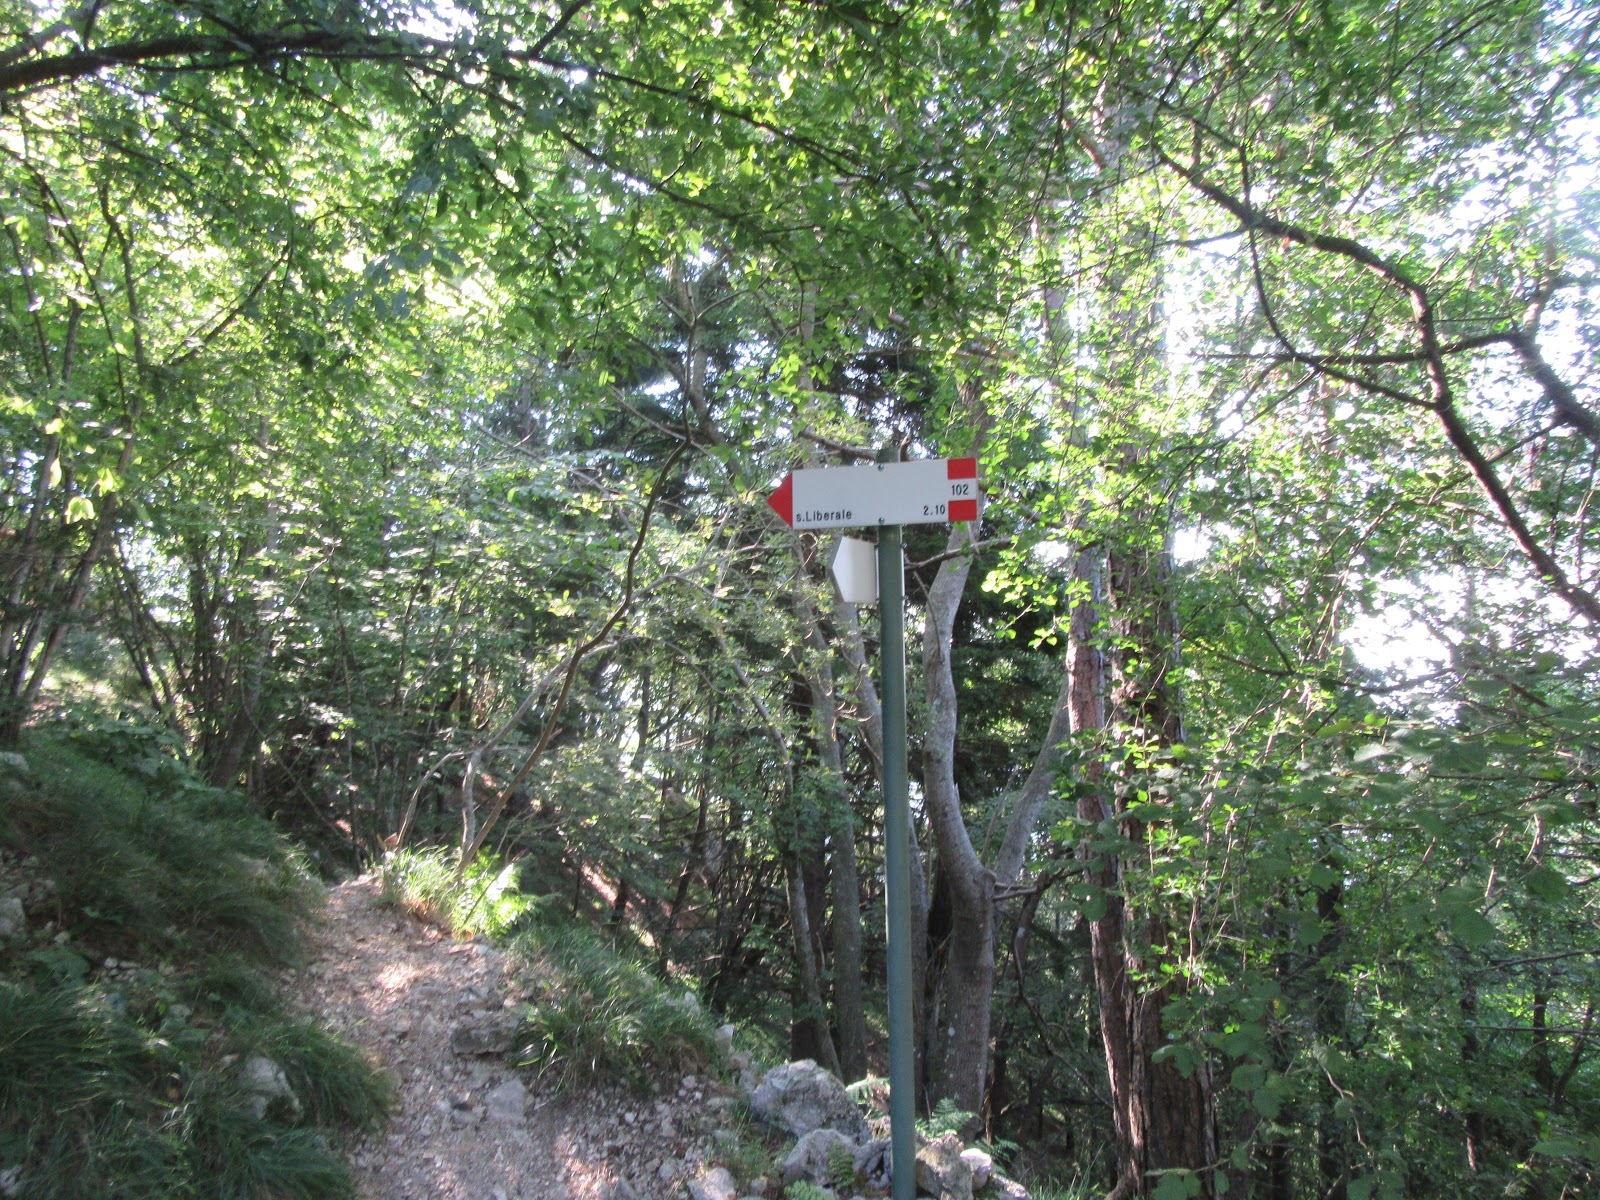 Bicycle ride Monte Grappa from Crespano - hiking trail sign